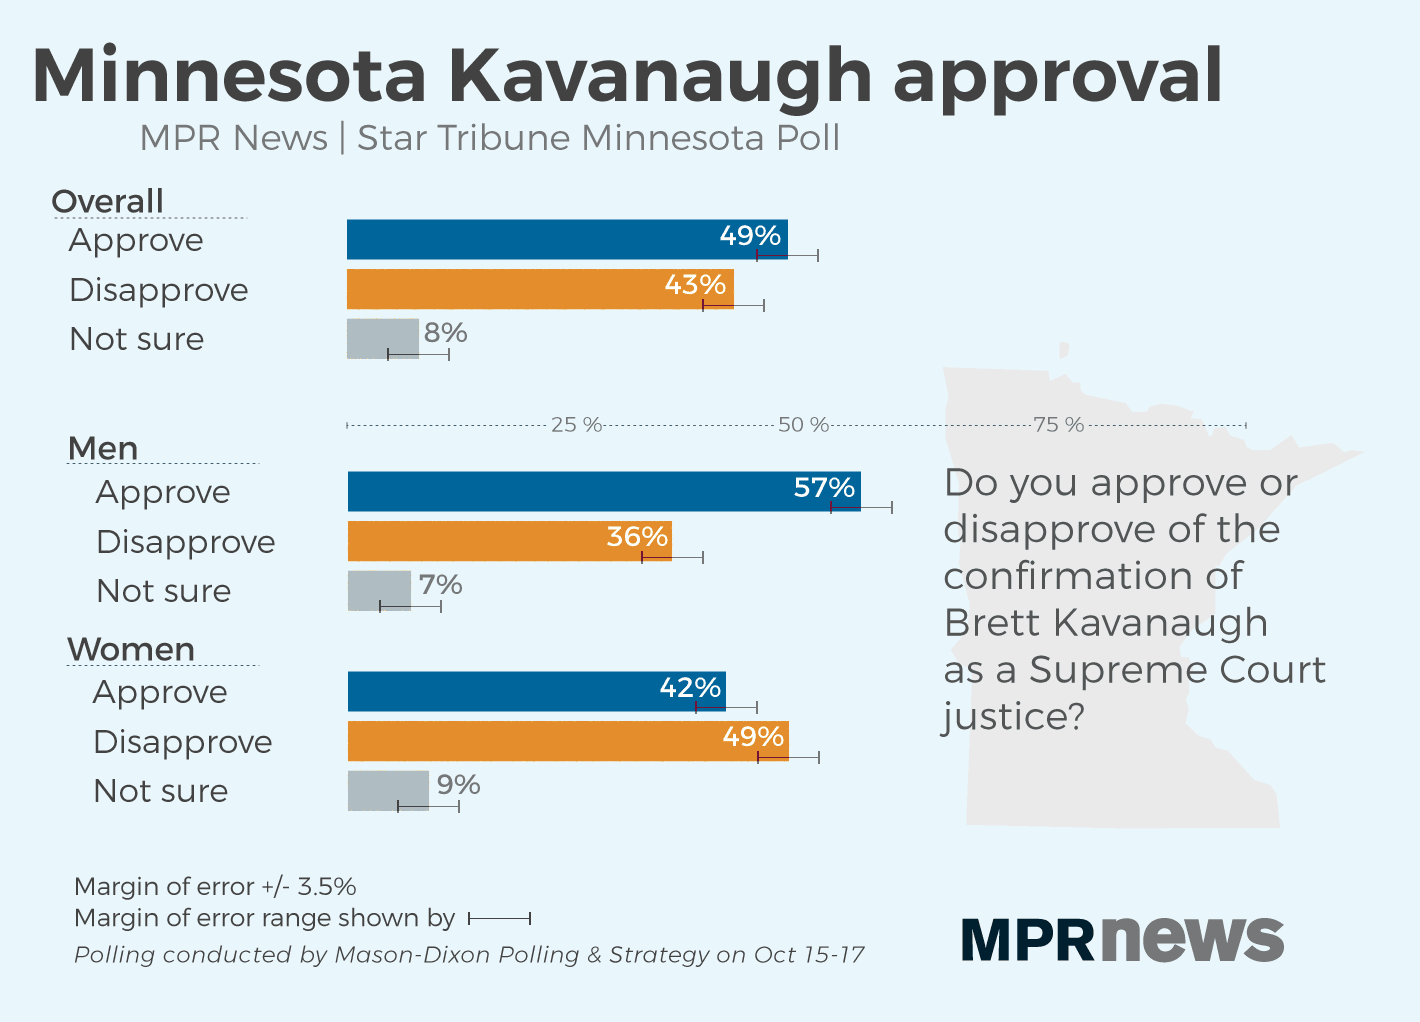 Most Minnesota voters approved of the Kavanaugh confirmation